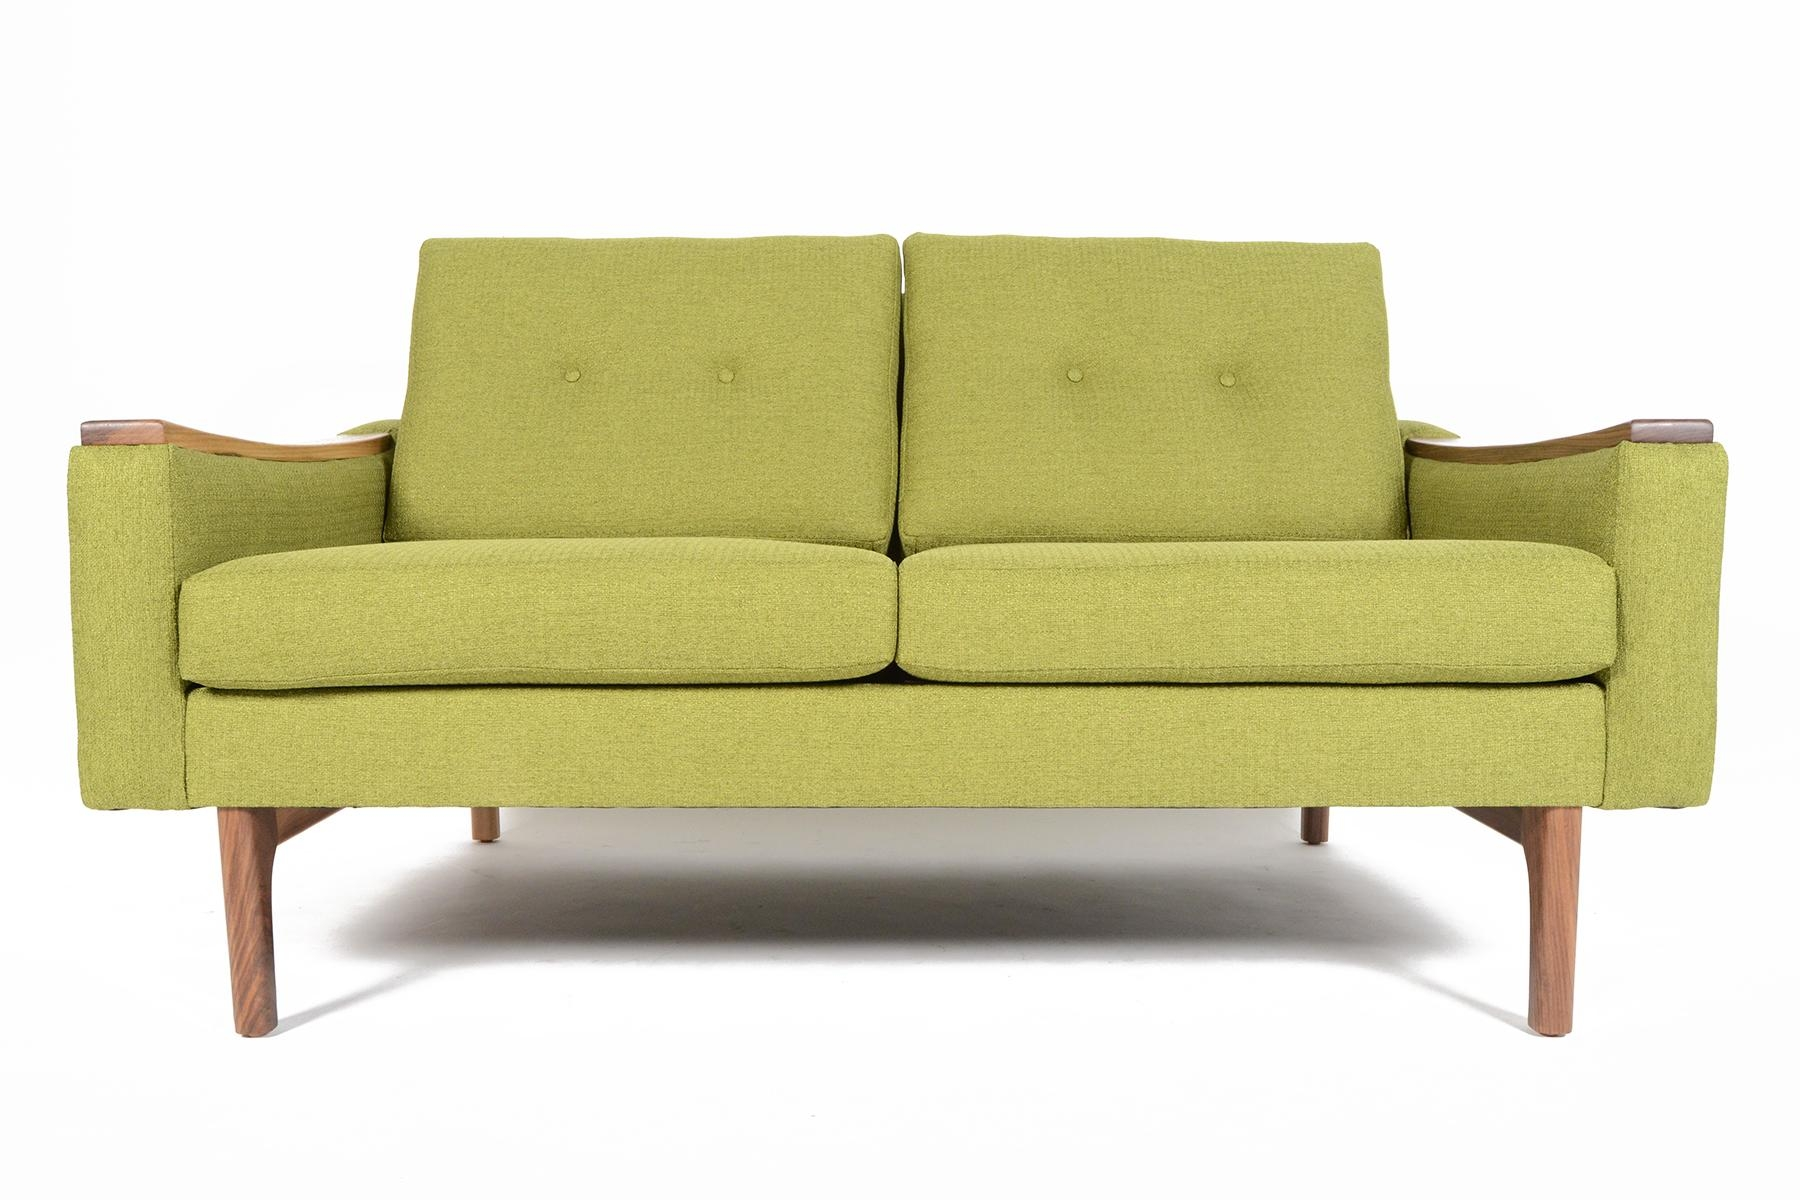 "Piedmont"" Mid Century Sofa 